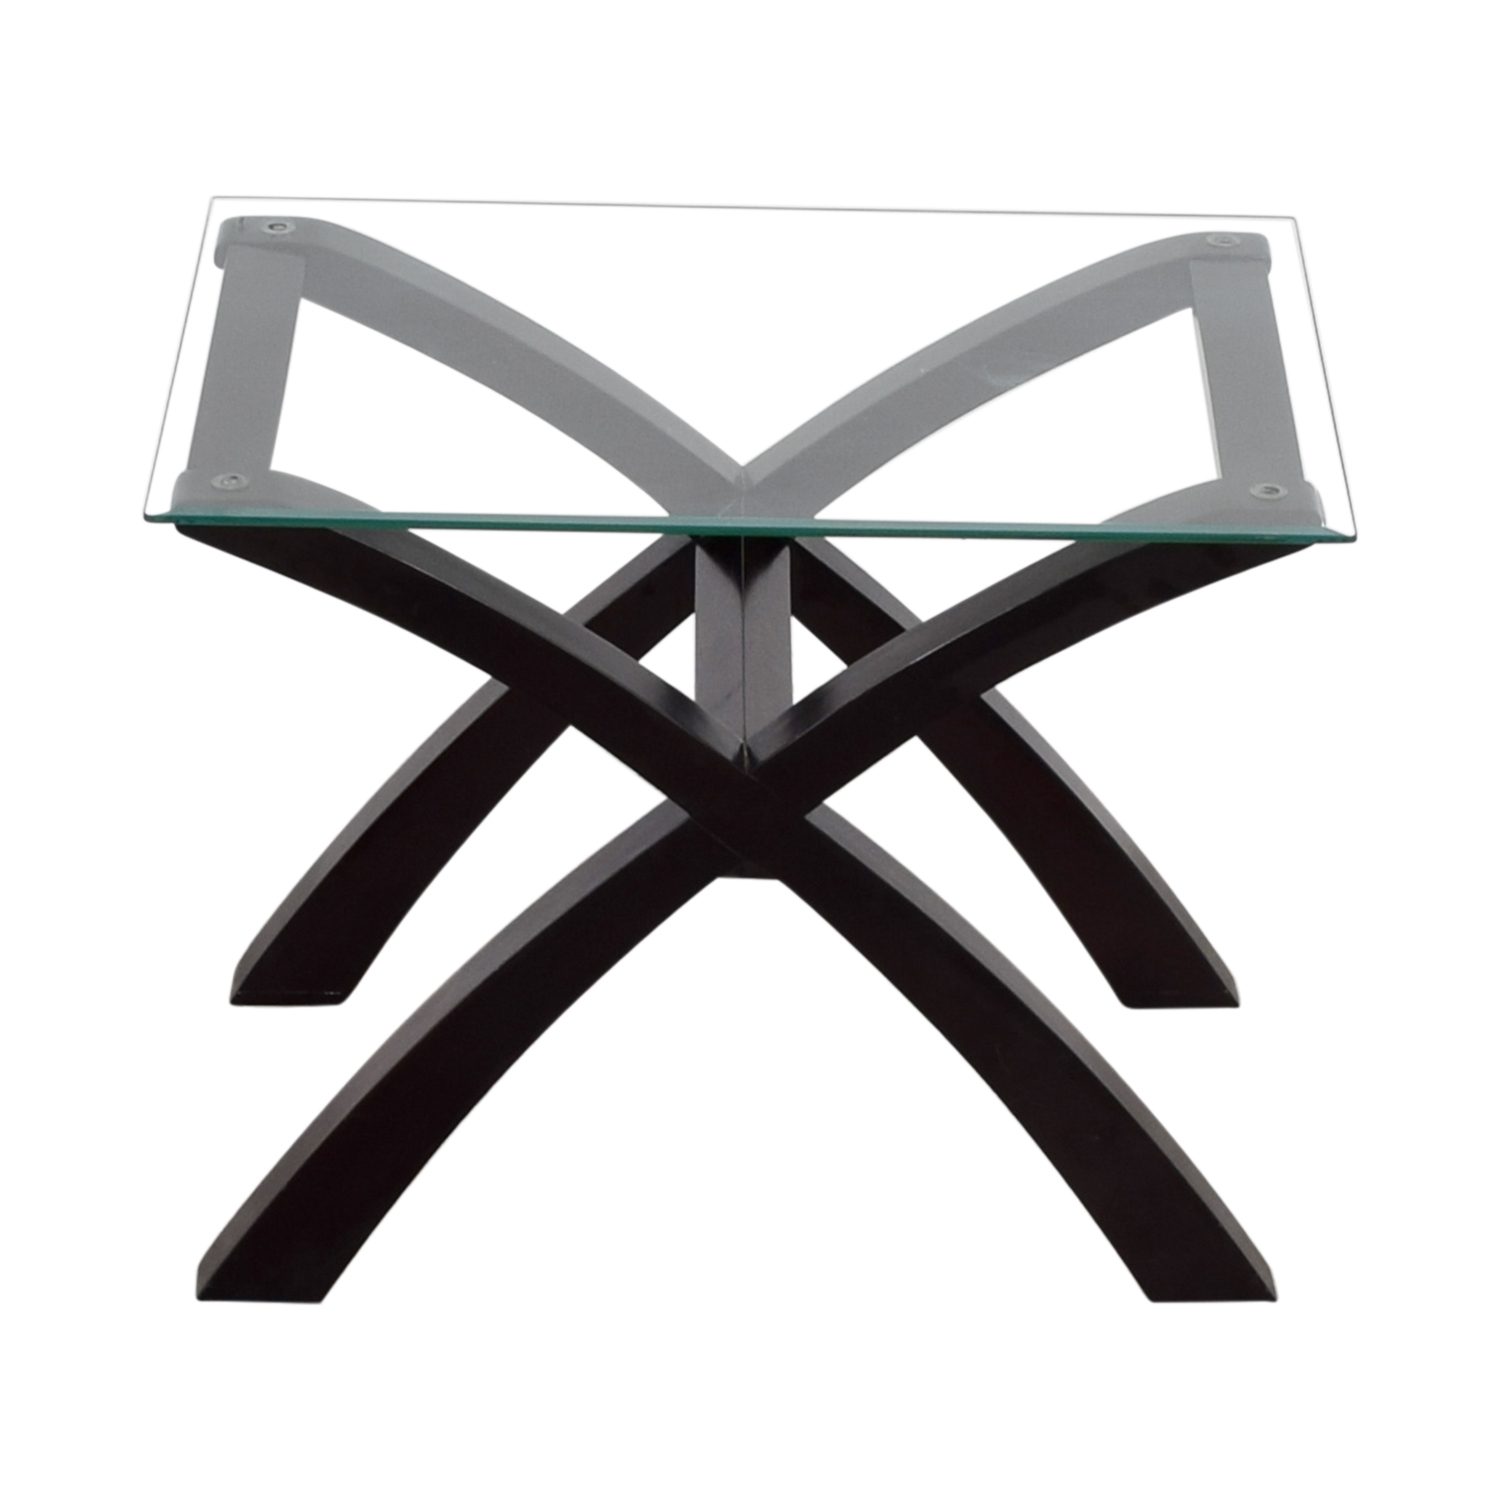 Glass and Wood Side Table / End Tables